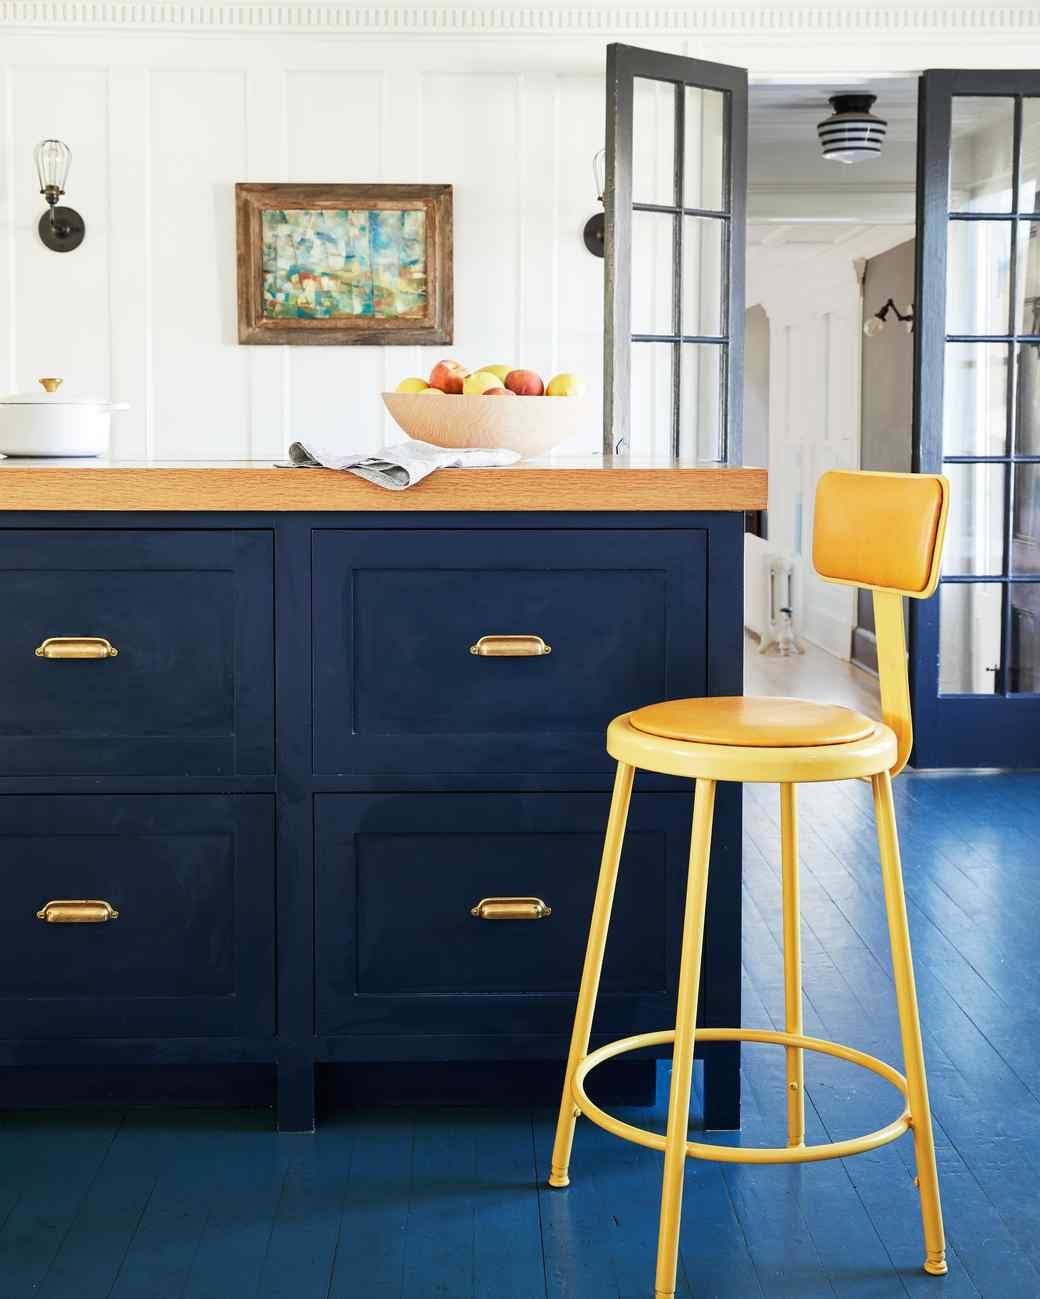 Spray-Painted Metal Stool | Painting cabinets, Kitchen ...